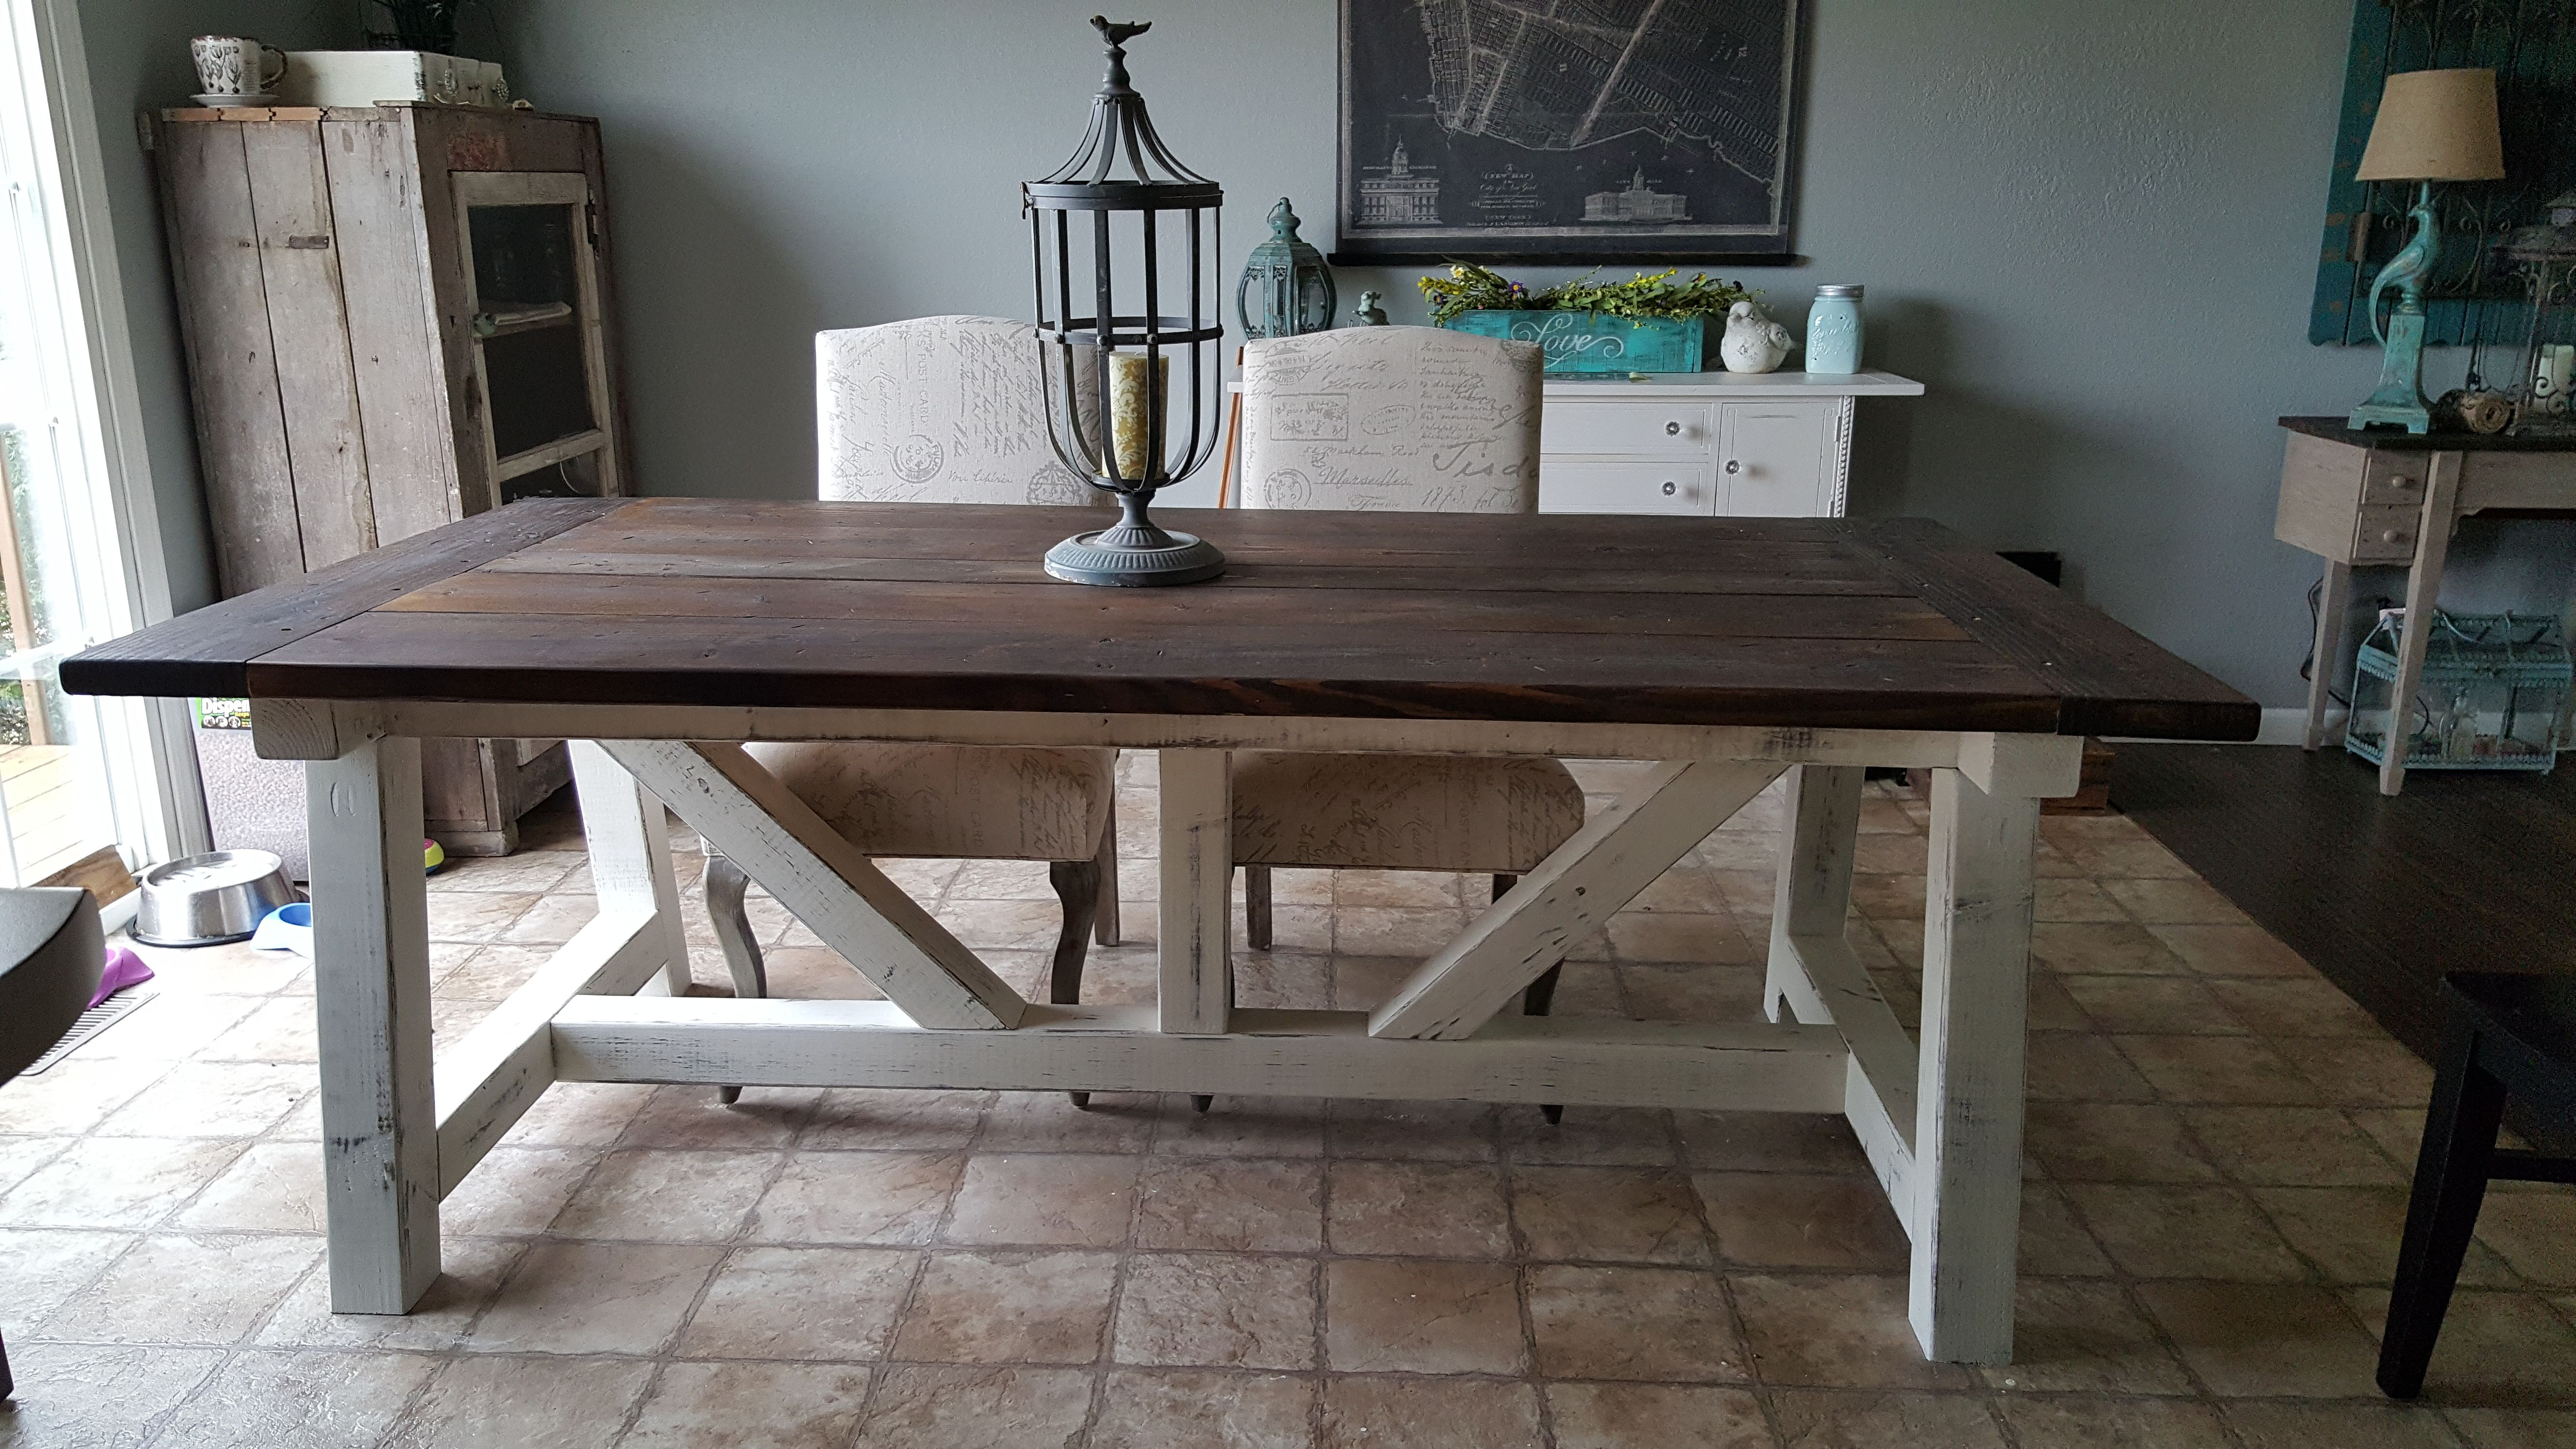 4x6 truss beam farm table do it yourself home projects from ana 4x6 truss beam farm table do it yourself home projects from ana white solutioingenieria Images